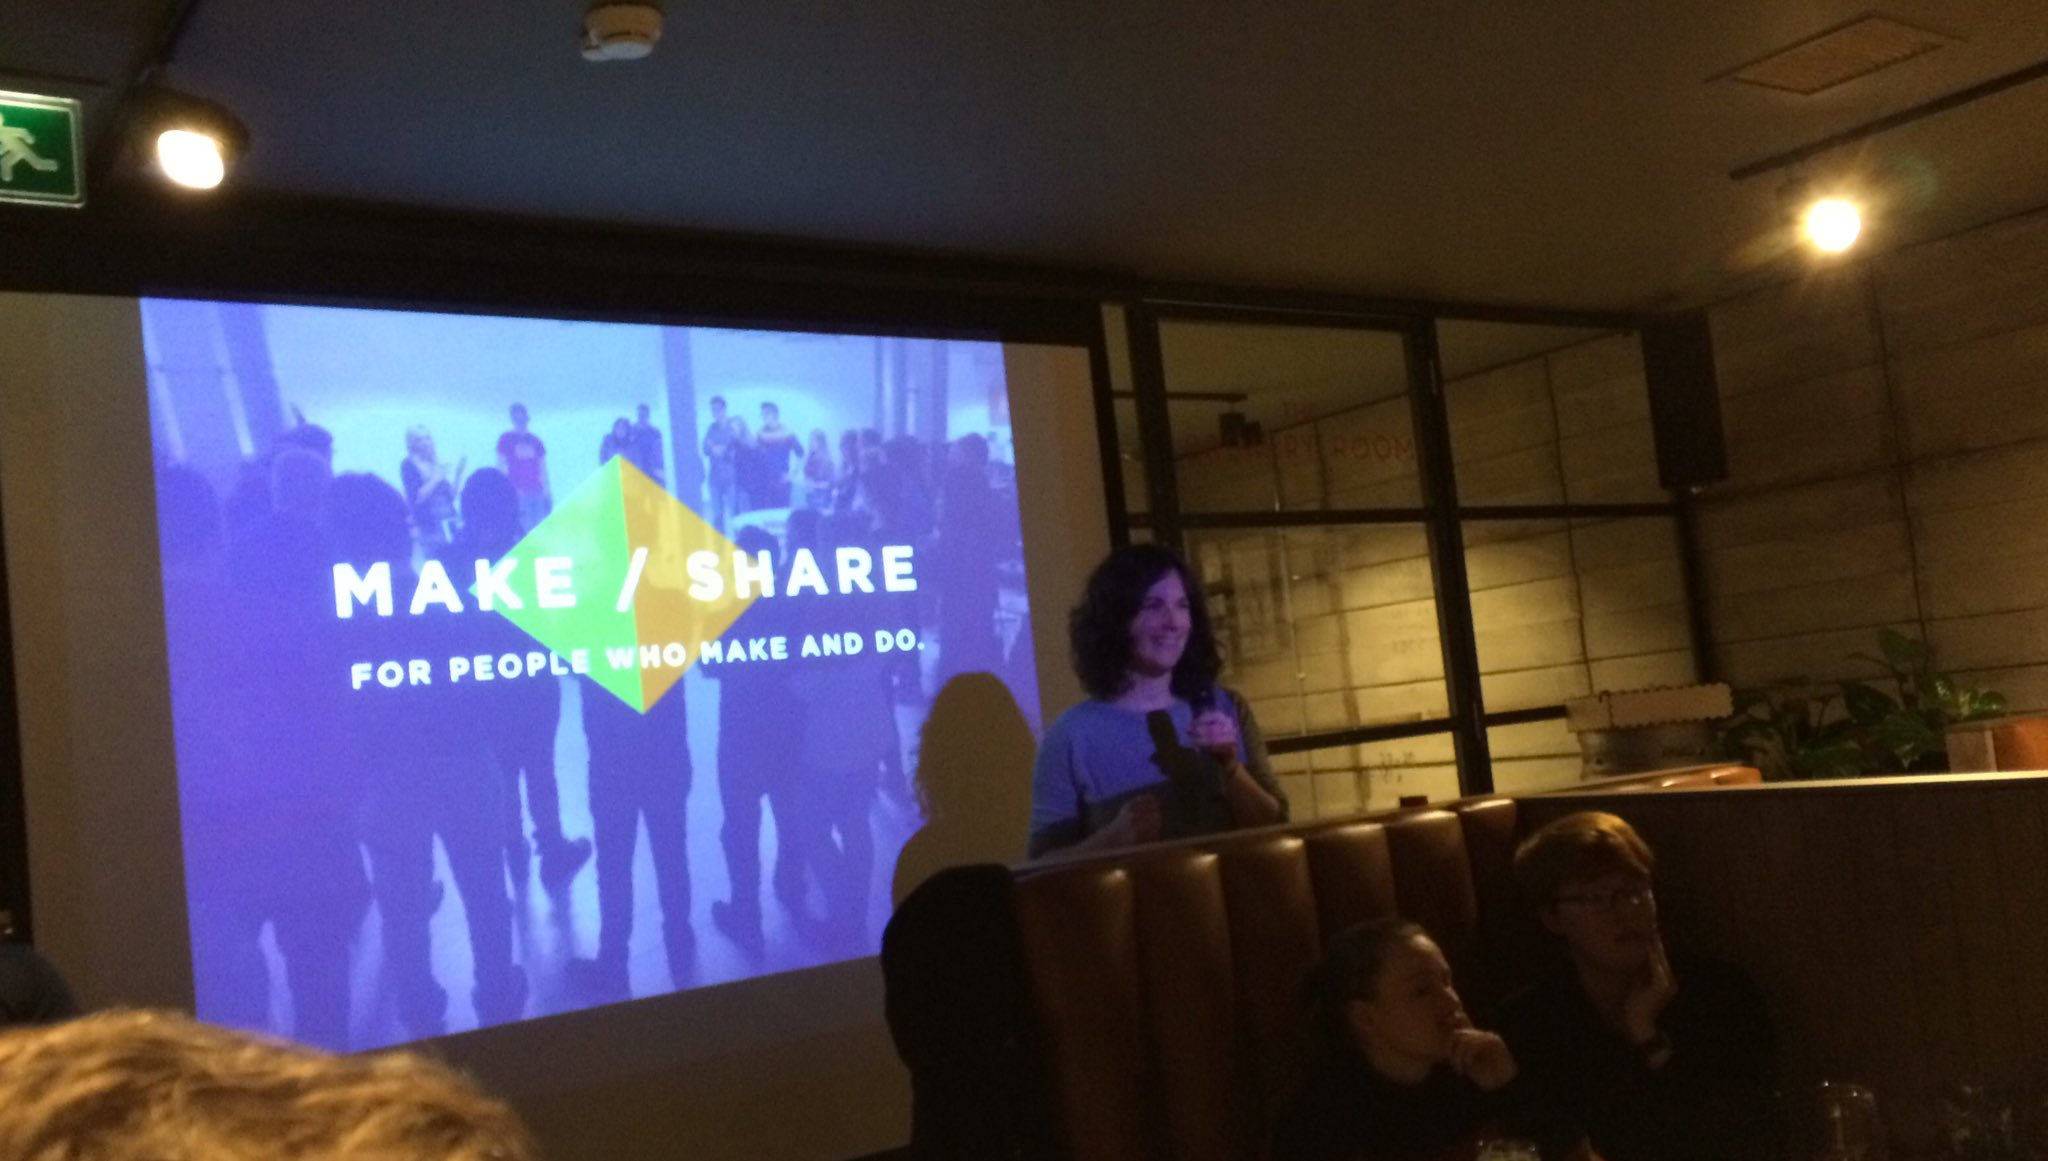 #makeshare is go! https://t.co/nL4CXRmVcL